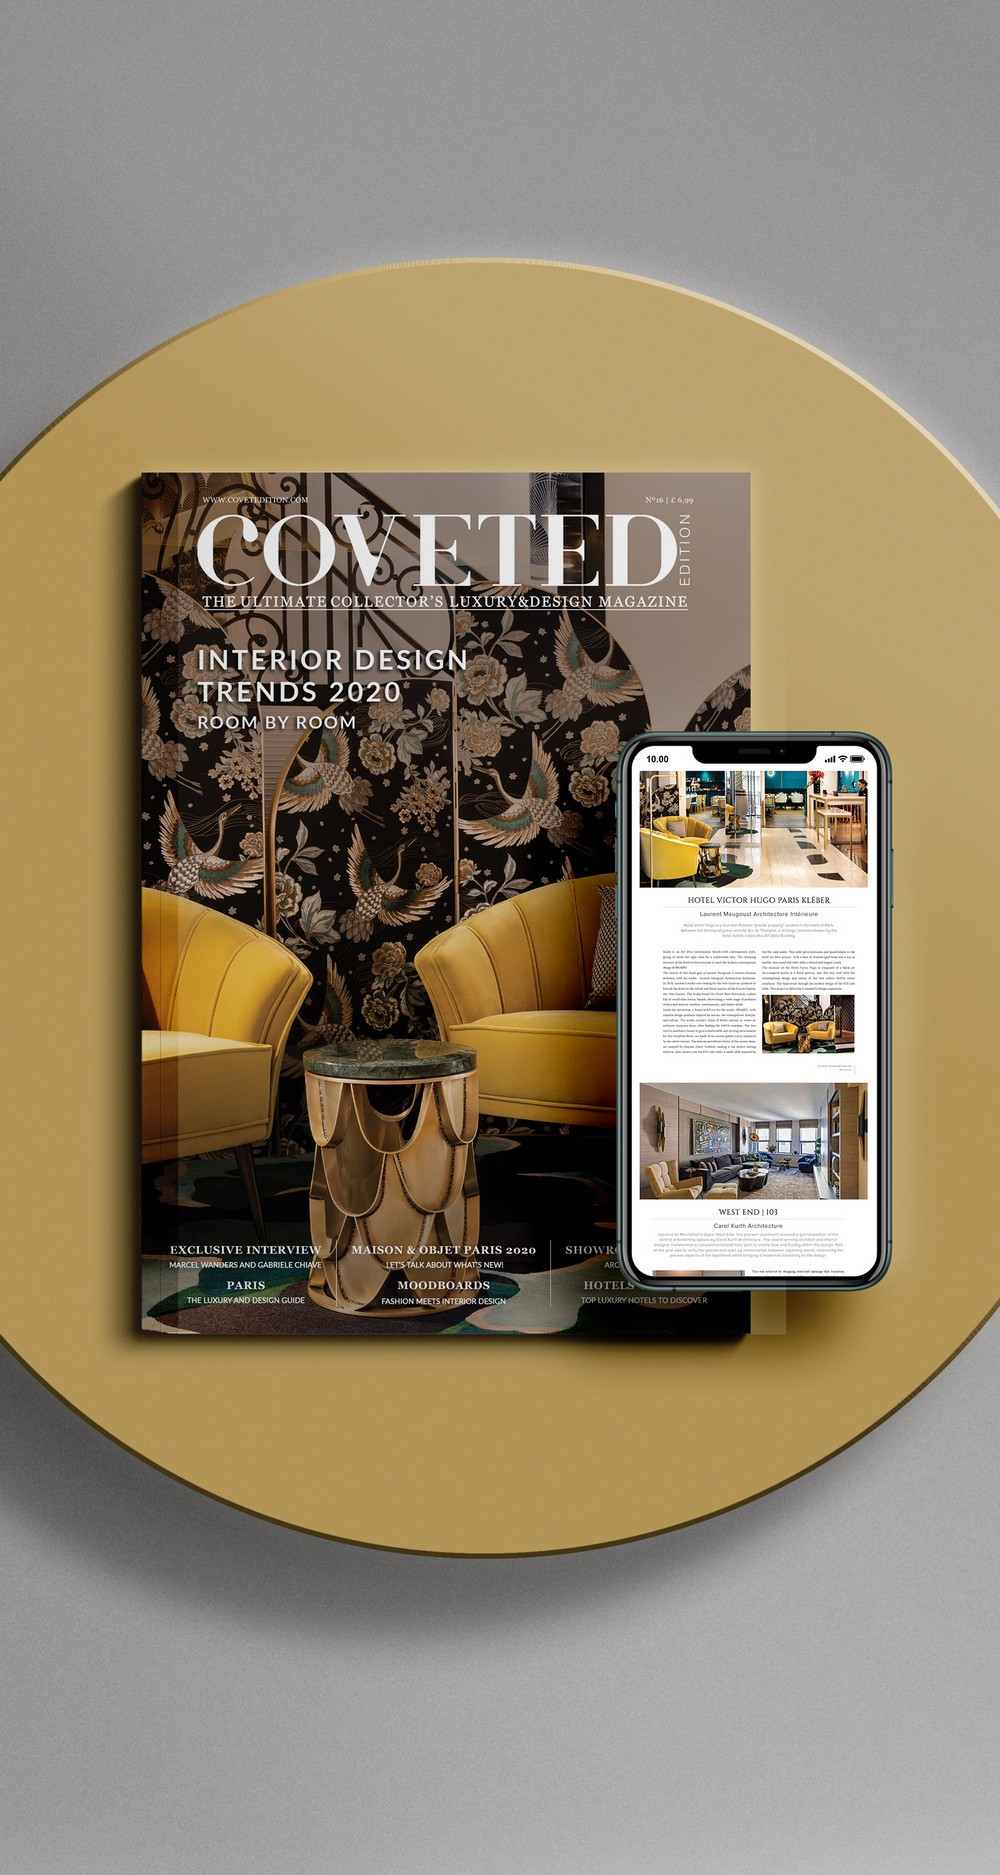 Maison et Objet 2020 - Here Is Why You Should By CovetED's 16th Issue! maison et objet Maison et Objet 2020 – Here Is Why You Should By CovetED's 16th Issue! Maison et Objet 2020 Here Is Why You Should By CovetEDs 16th Issue capa